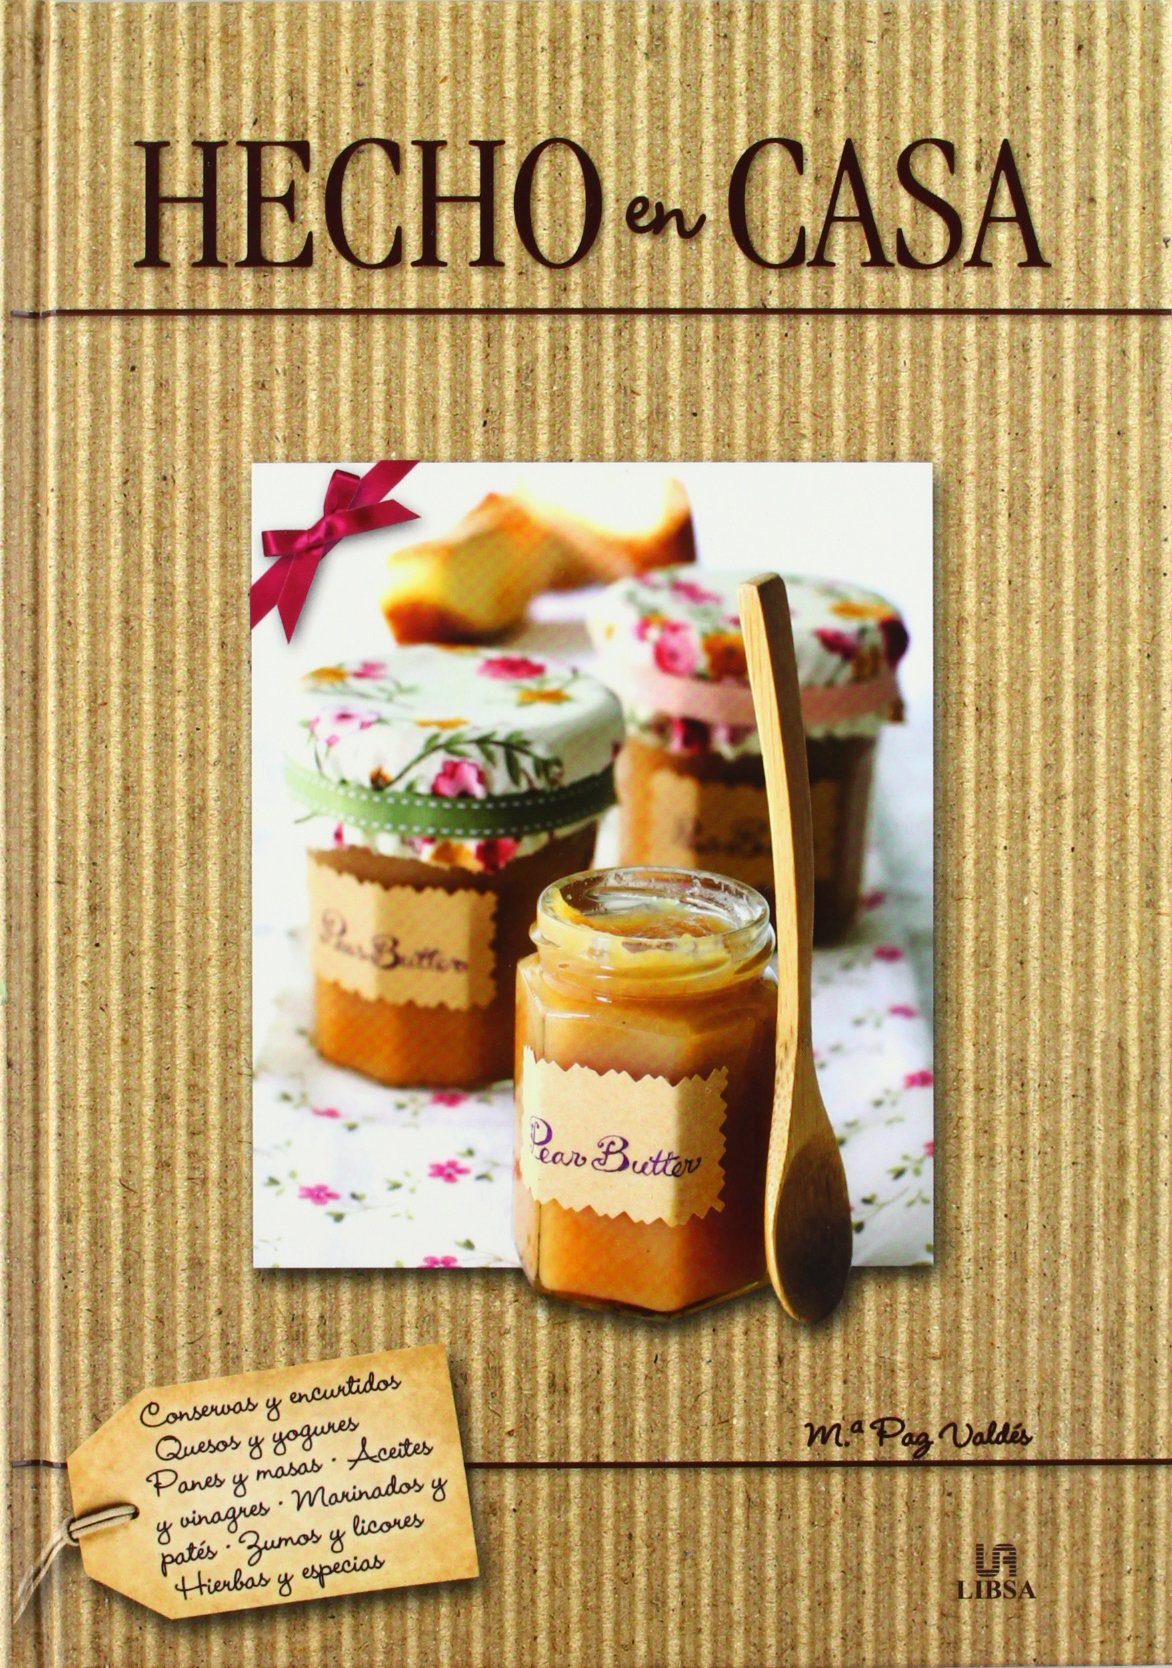 Hecho en casa / Homemade (Spanish Edition) (Spanish) Hardcover – January 1, 2013